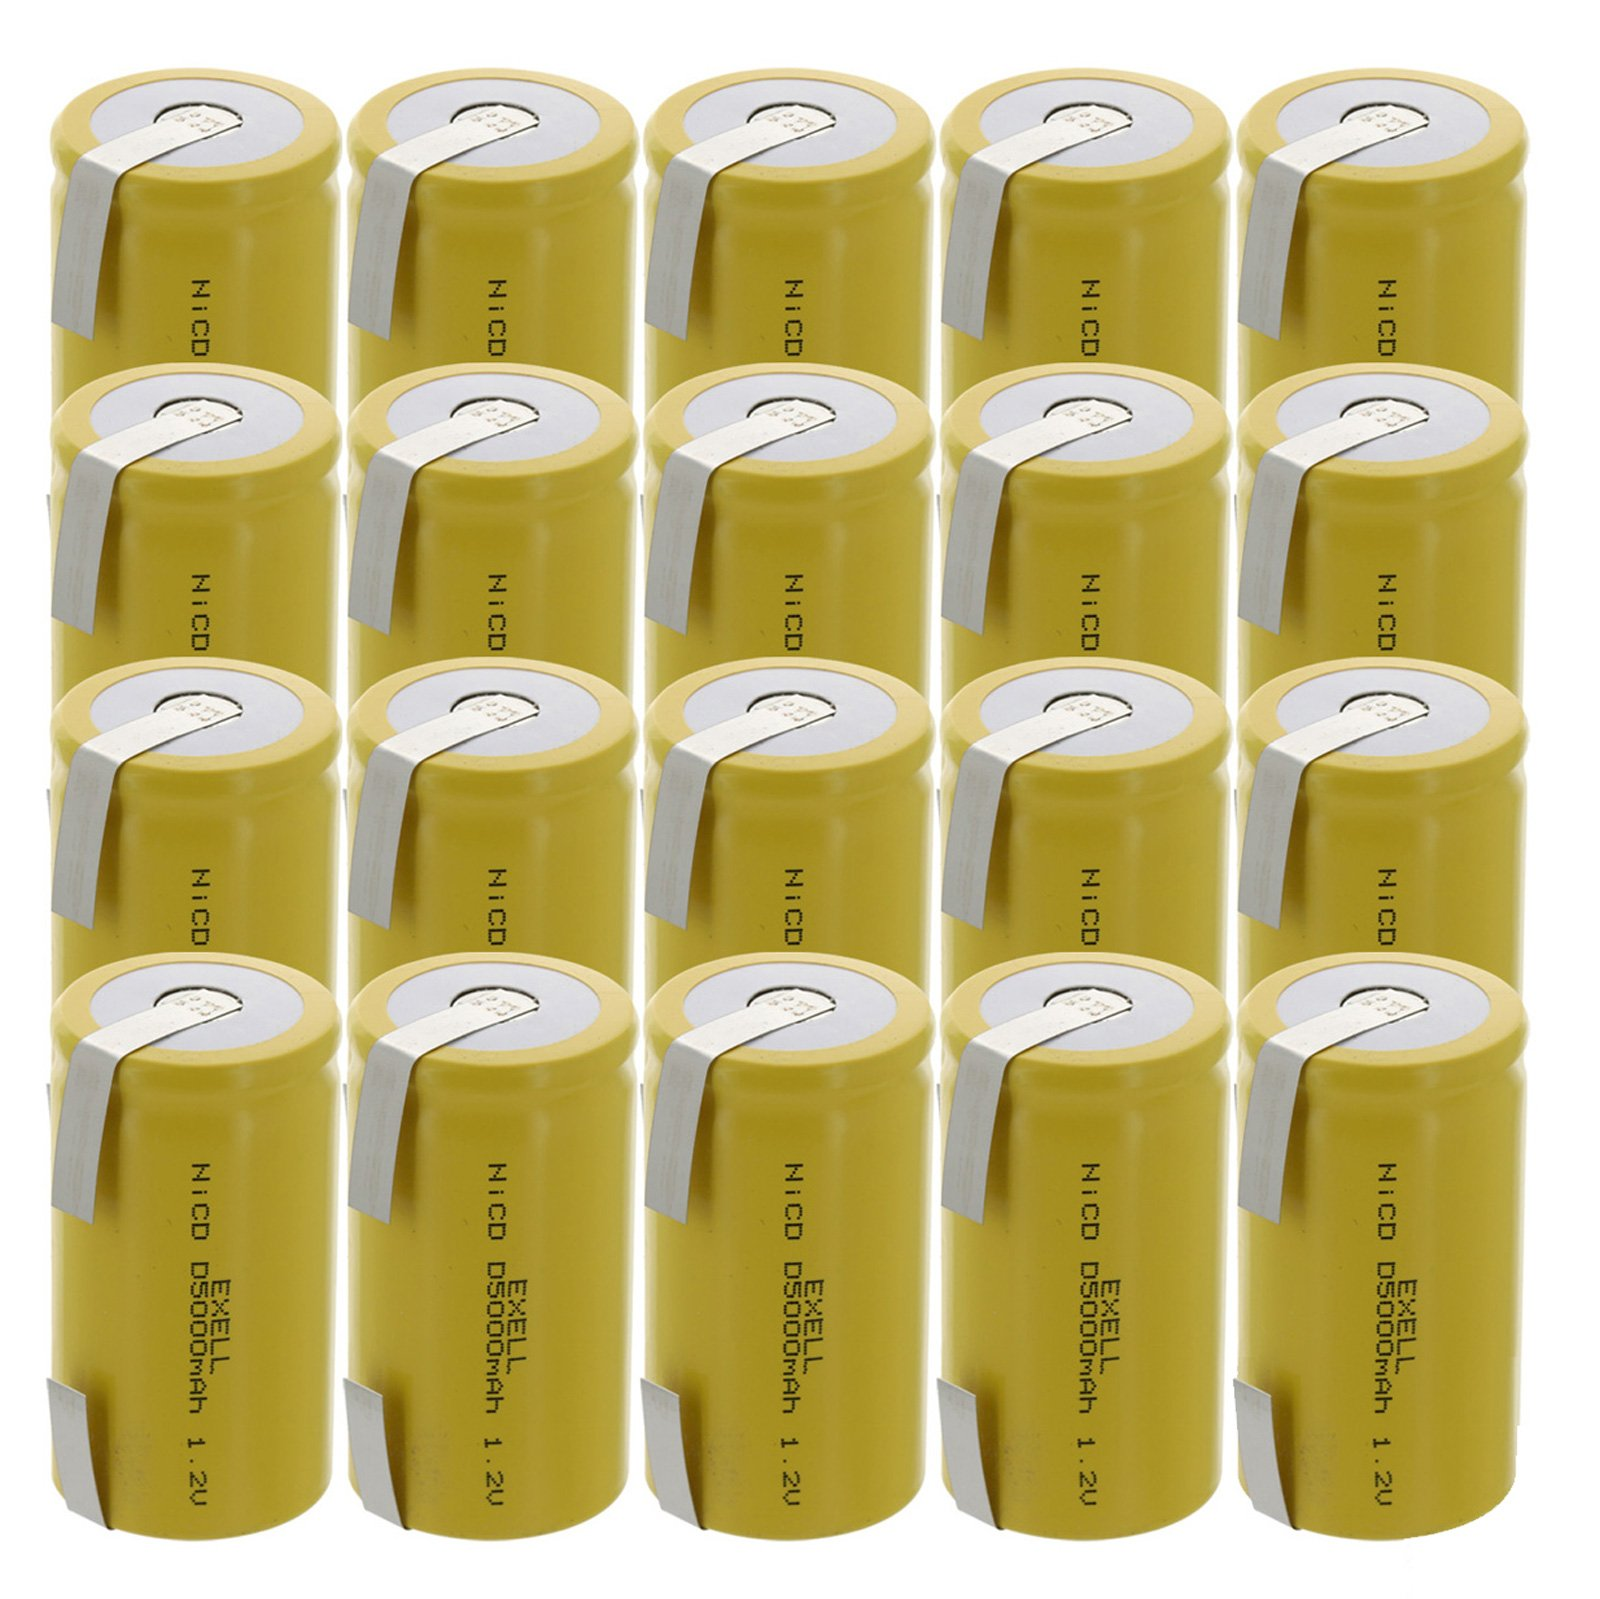 20x Exell D Size 1.2V 5000mAh NiCD Rechargeable Batteries with Tabs for medical instruments/equipment, electric razors, toothbrushes, radio controlled devices, electric tools by Exell Battery